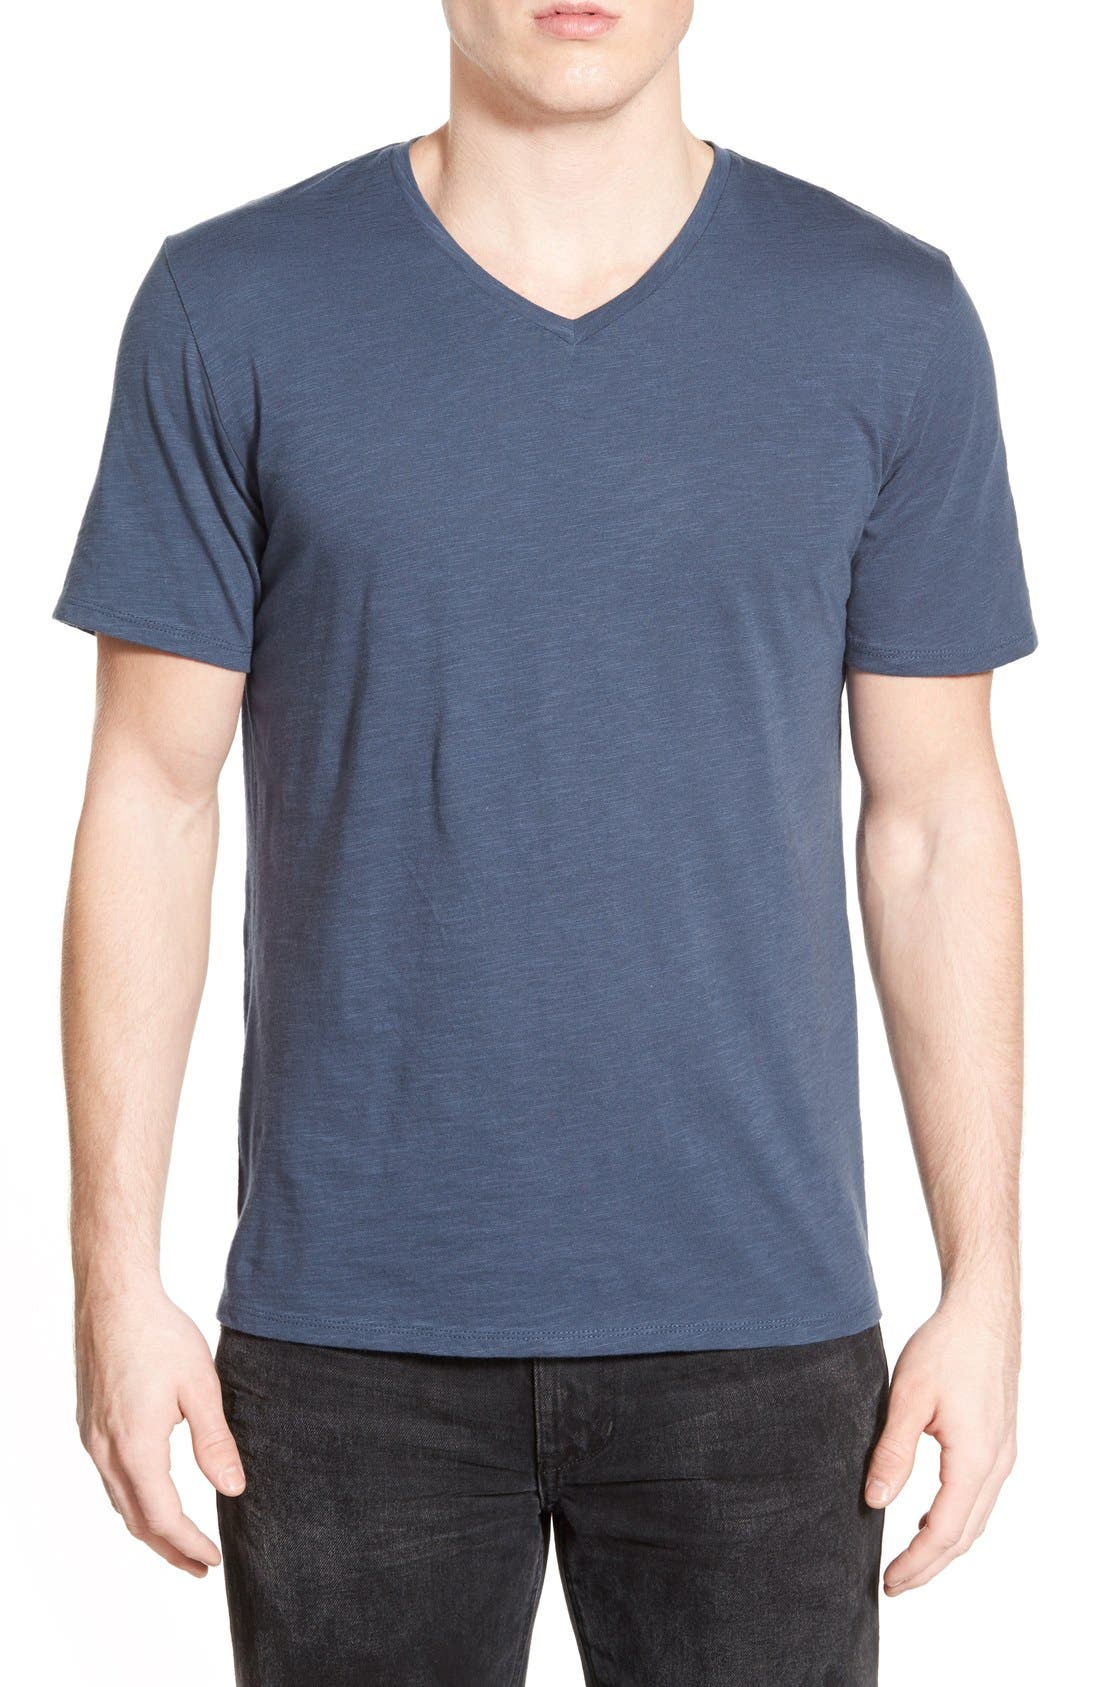 Alternate Image 1 Selected - The Rail Slub Cotton V-Neck T-Shirt